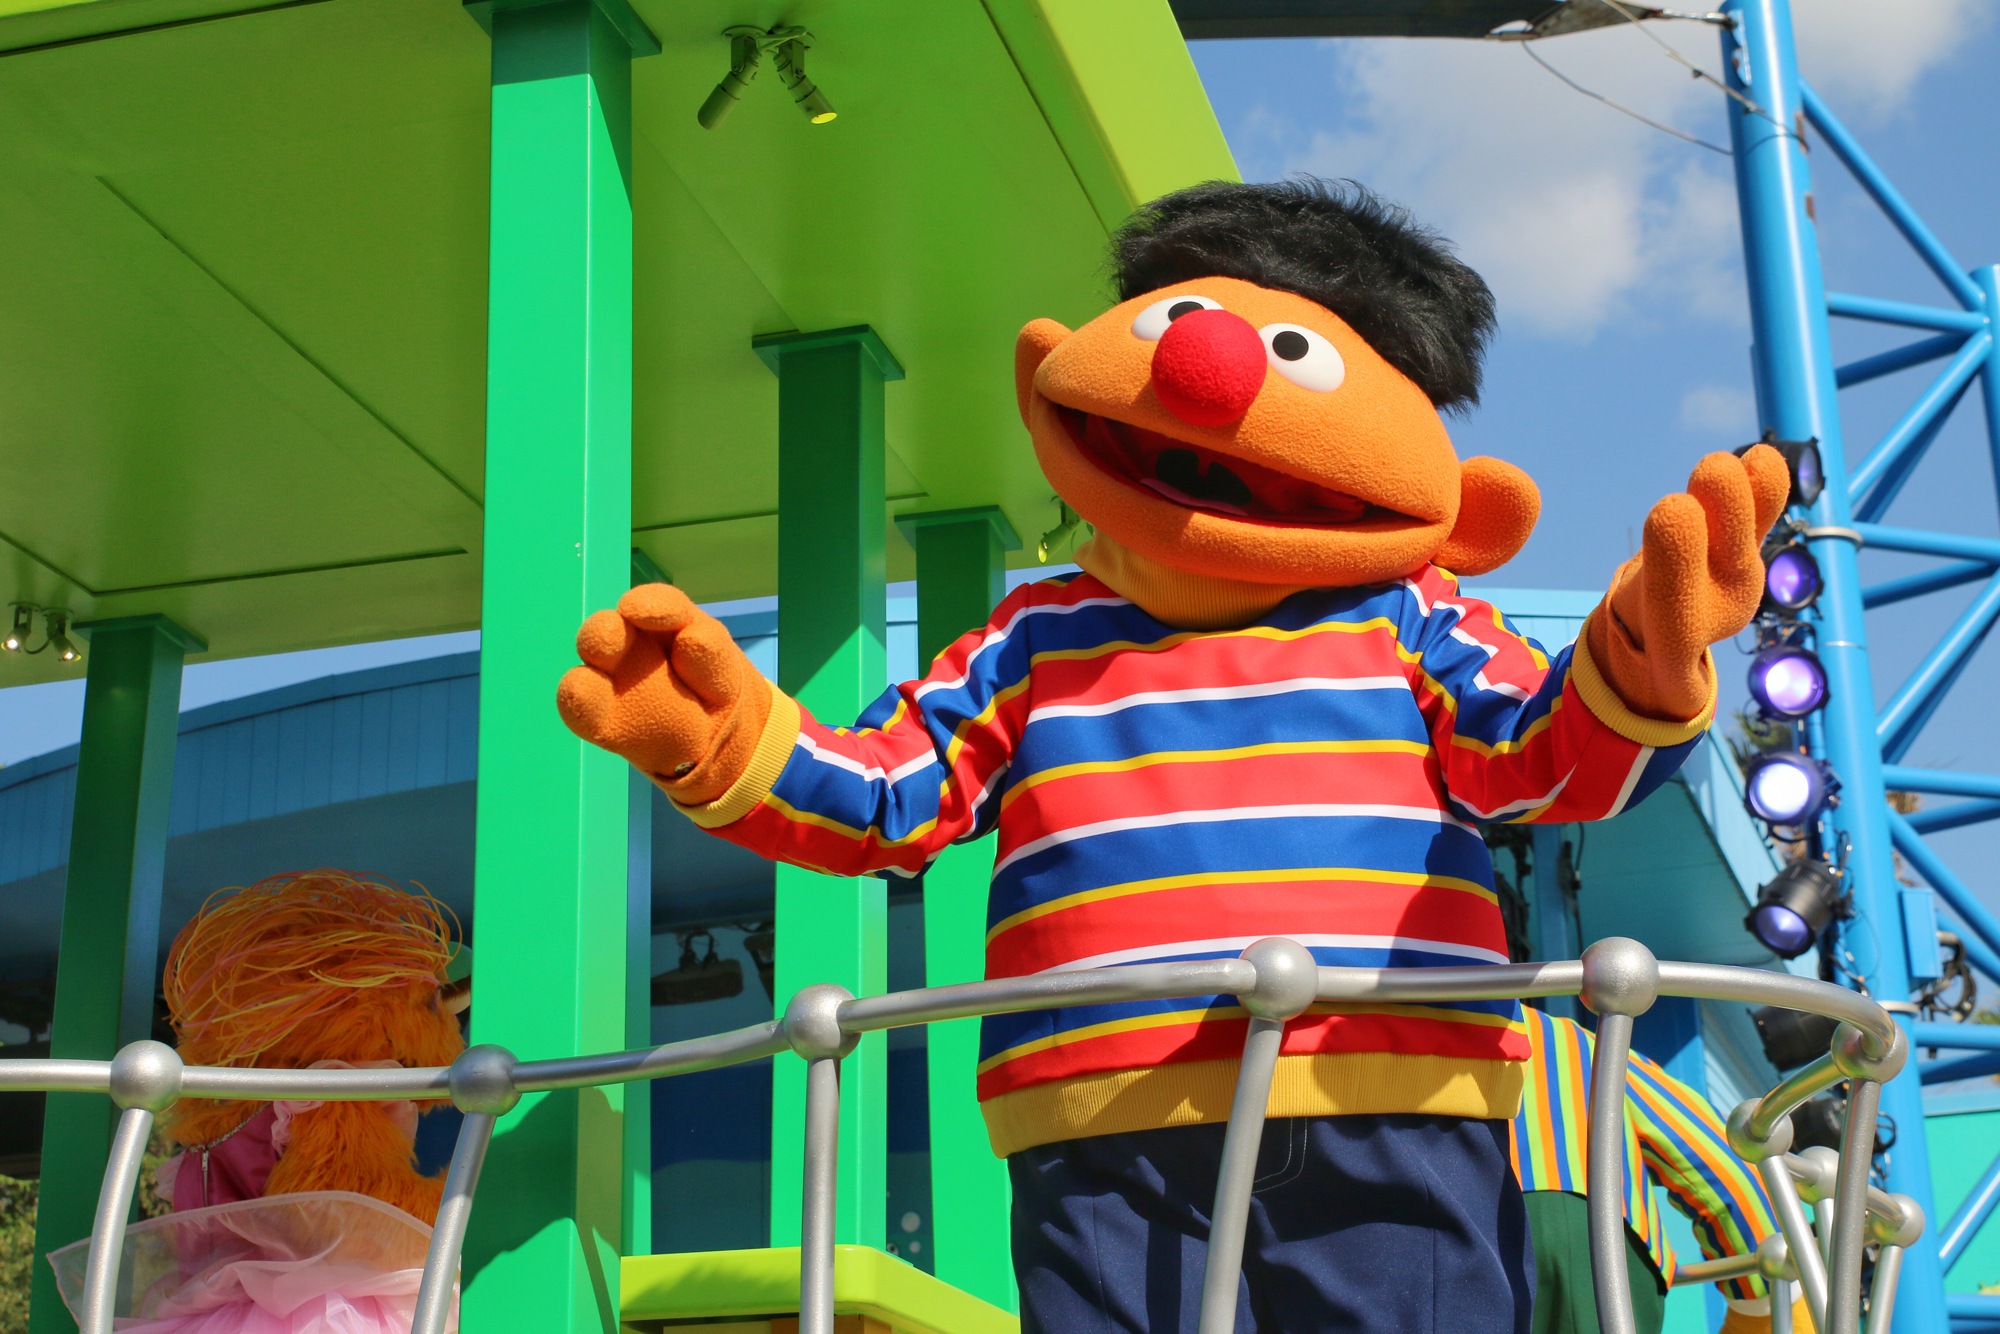 Ernie on parade float at SeaWorld